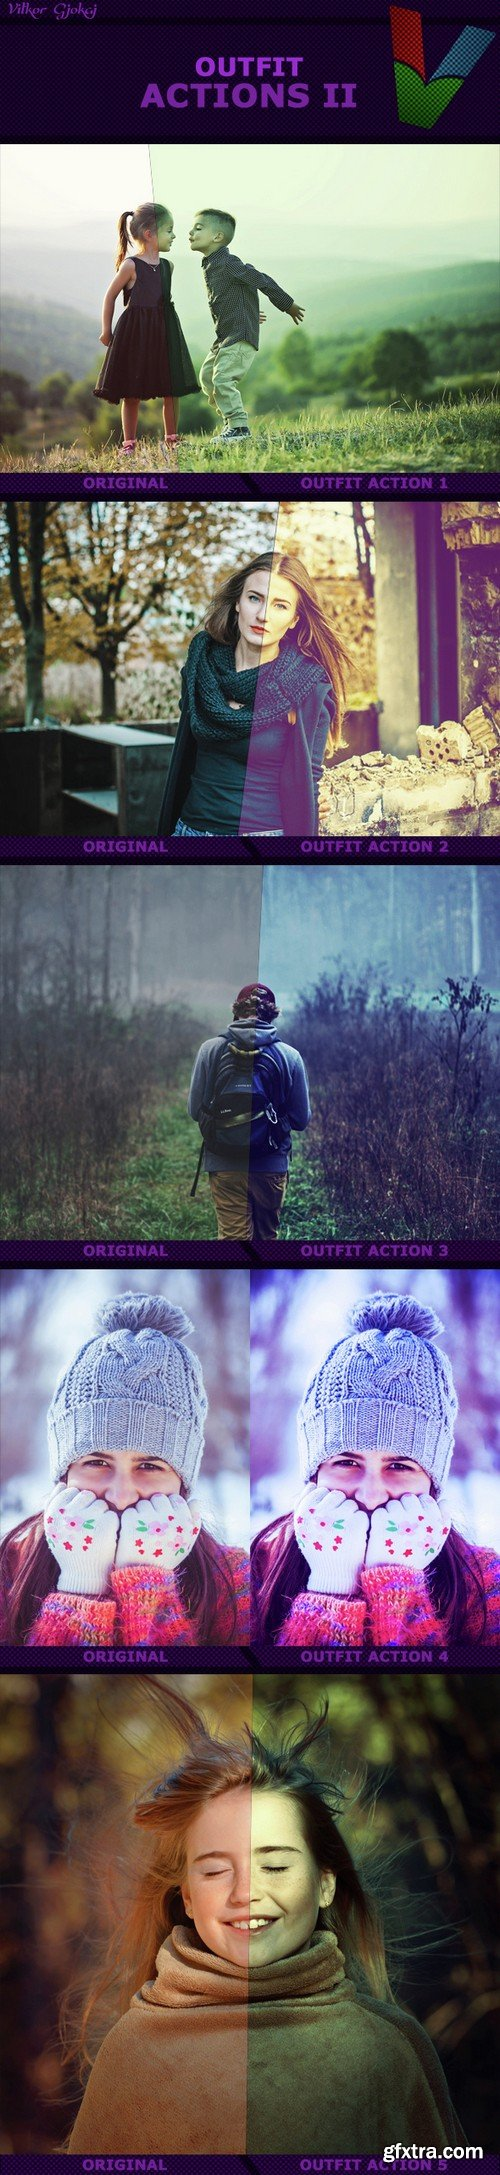 Graphicriver - Outfit Actions II 14865481